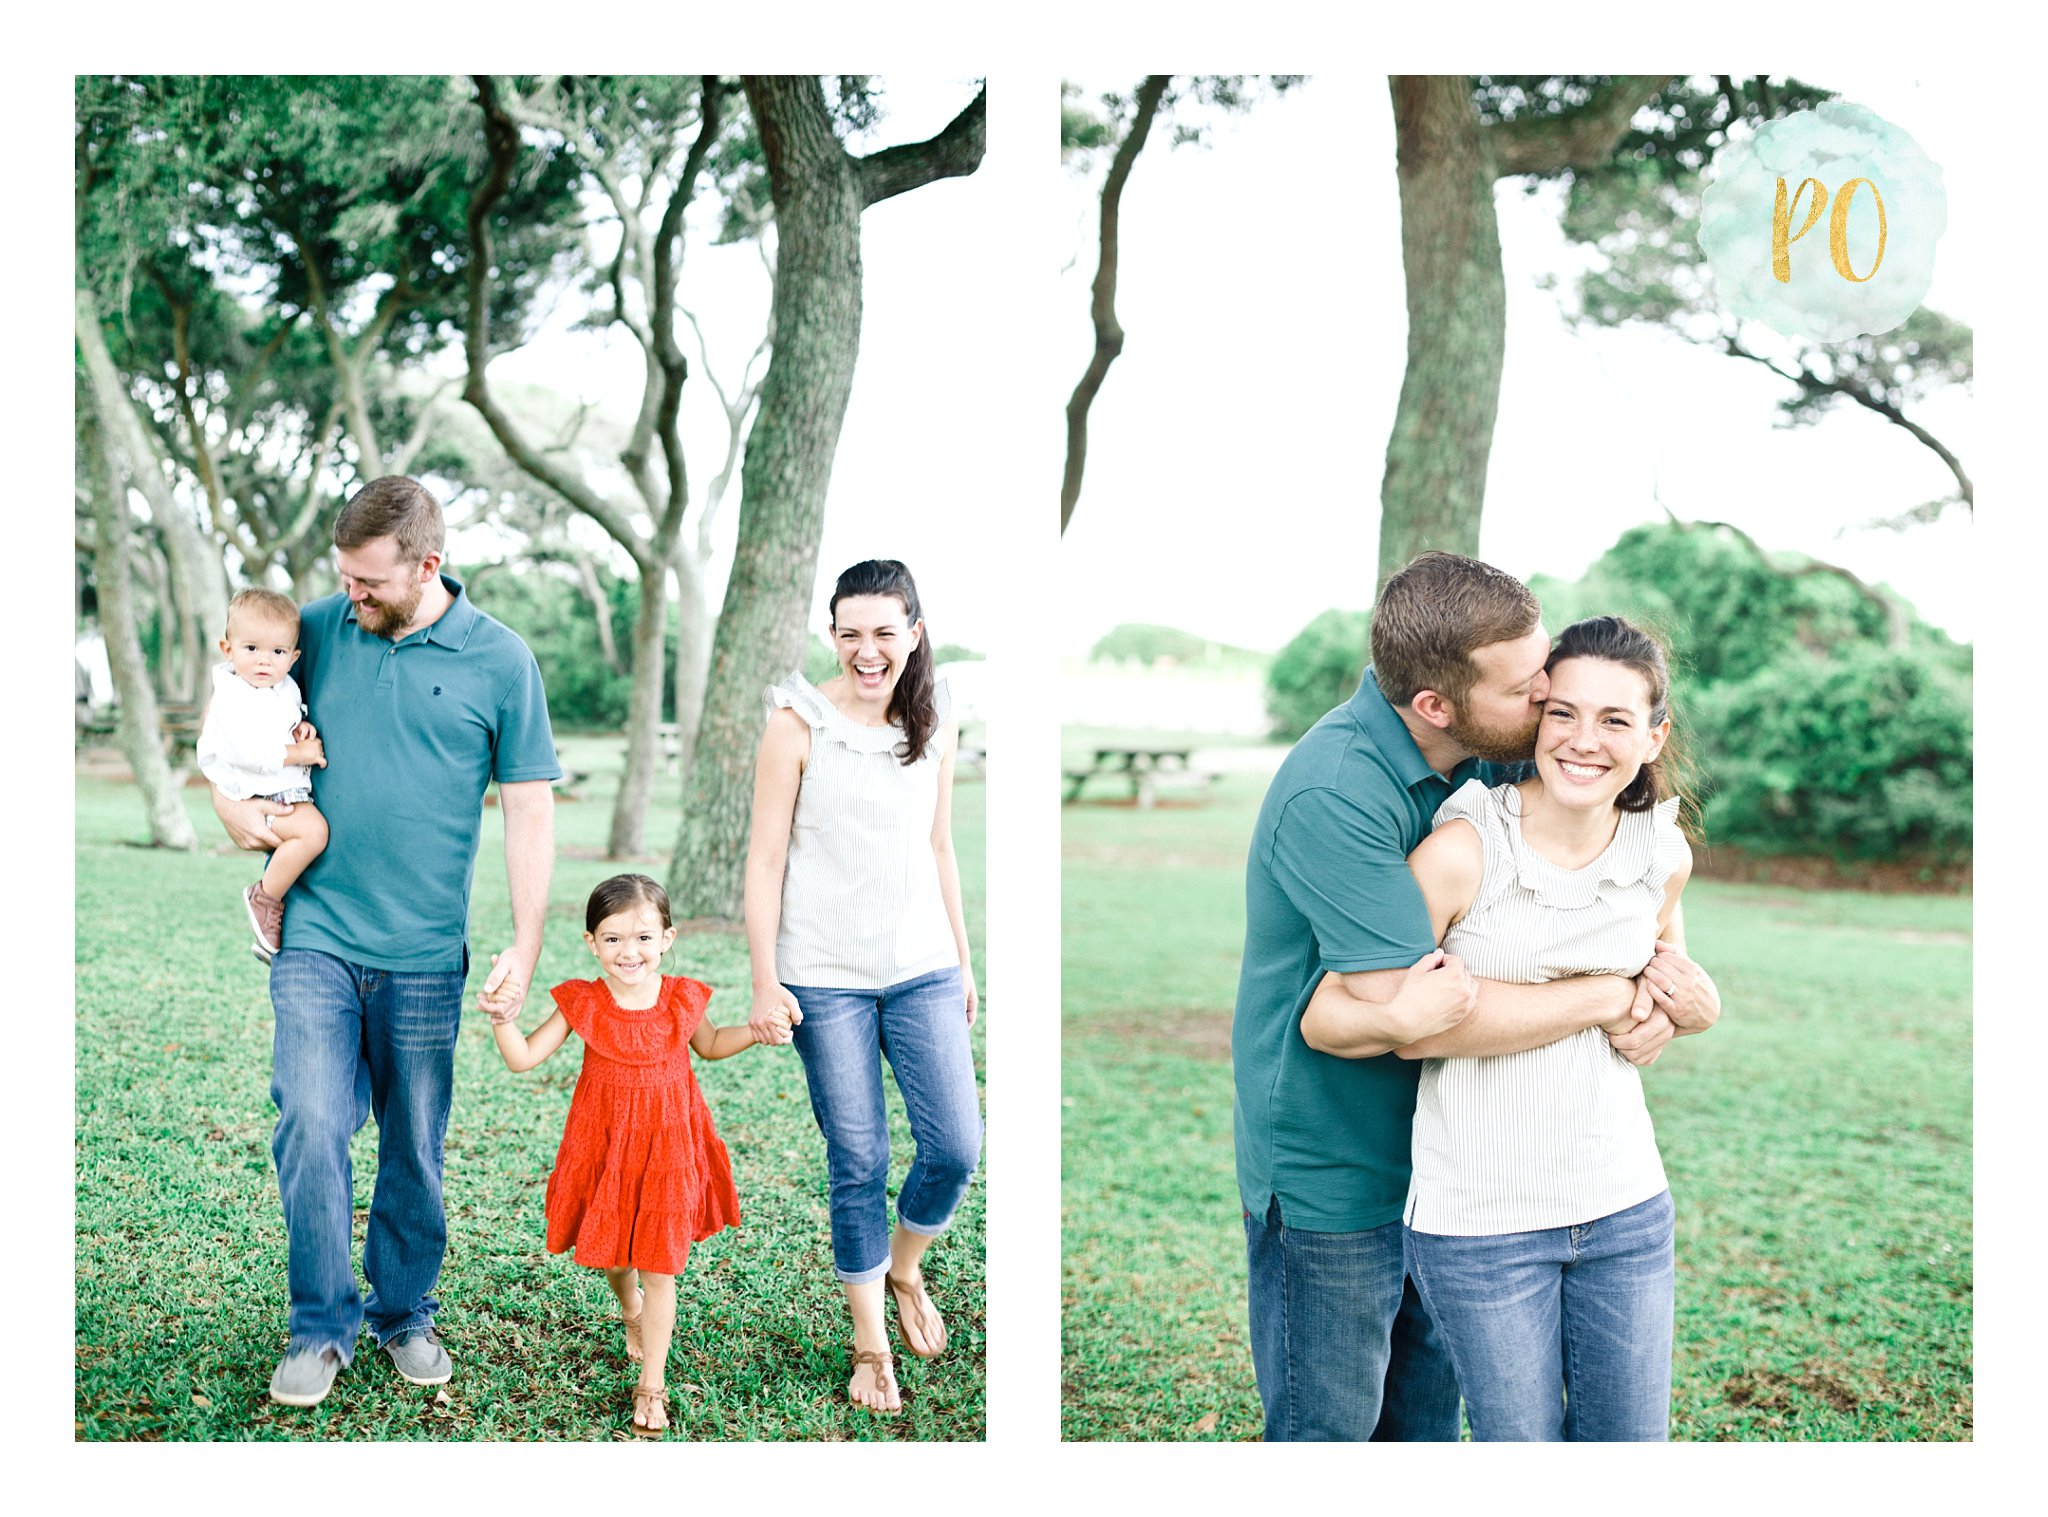 family-of-four-outdoor-family-session-myrtle-beach-state-park-myrtle-beach-sc-photos_0008.jpg